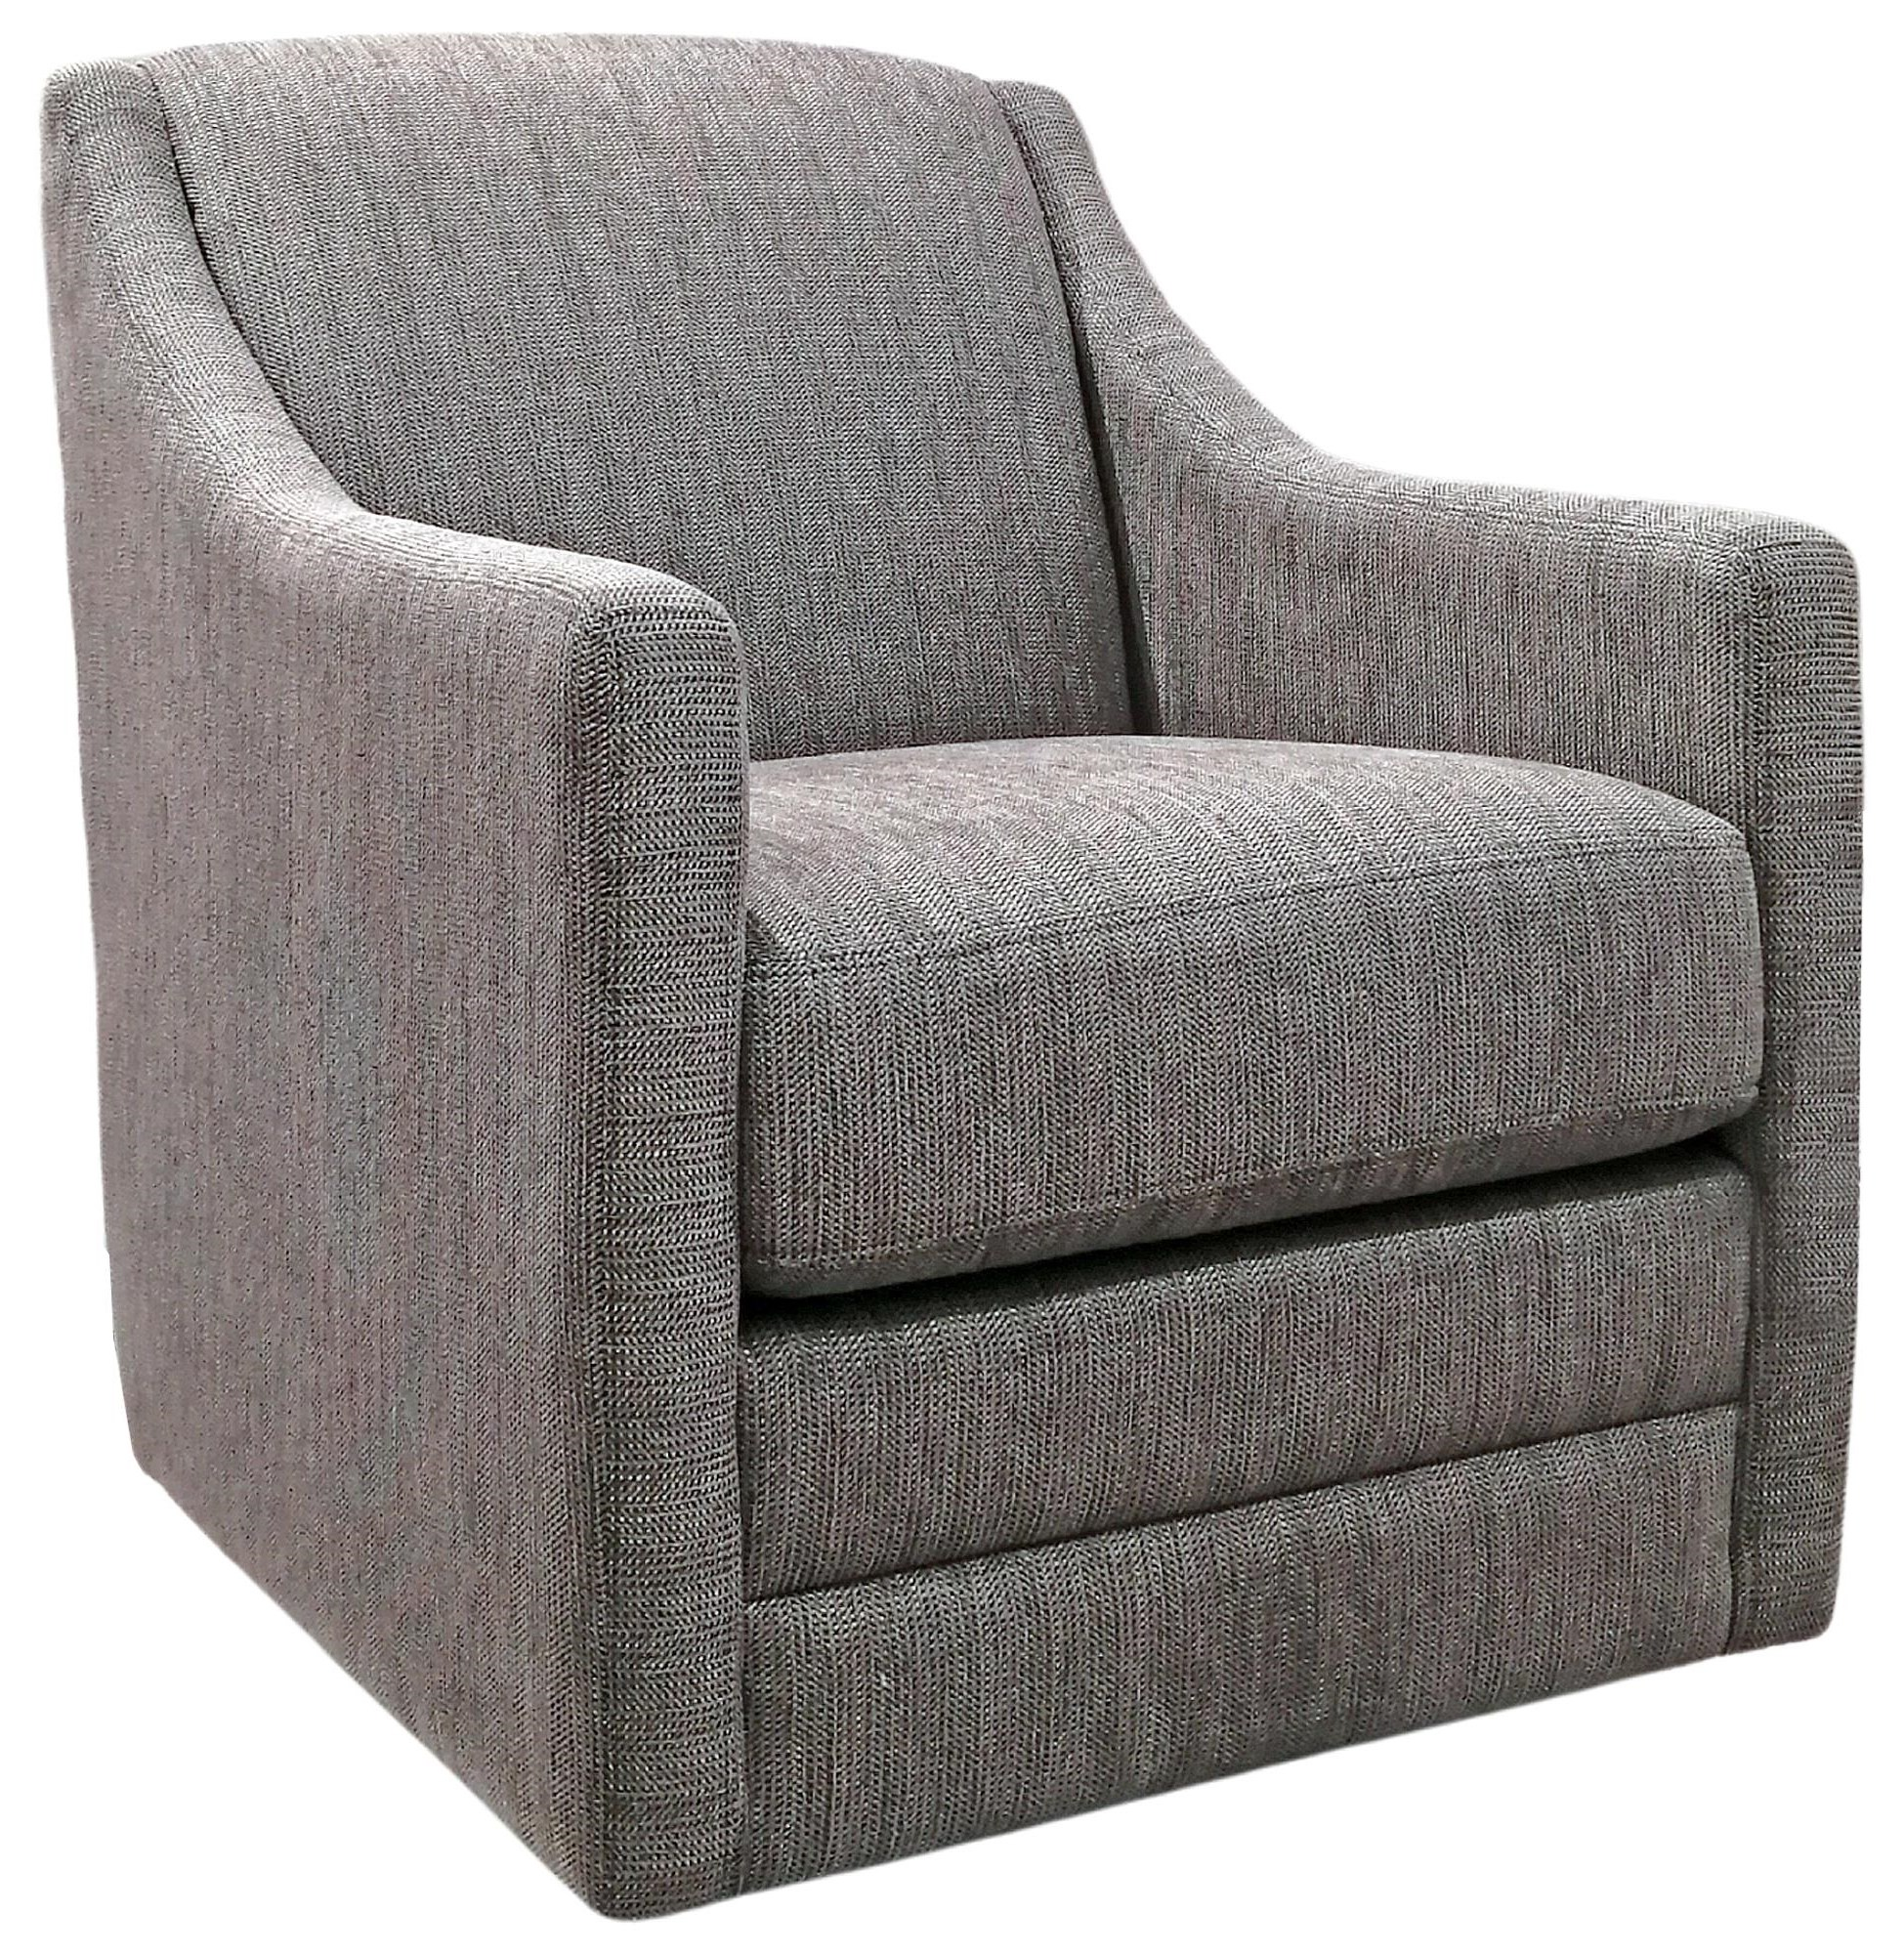 2443 Swivel Chair by Decor-Rest at Upper Room Home Furnishings